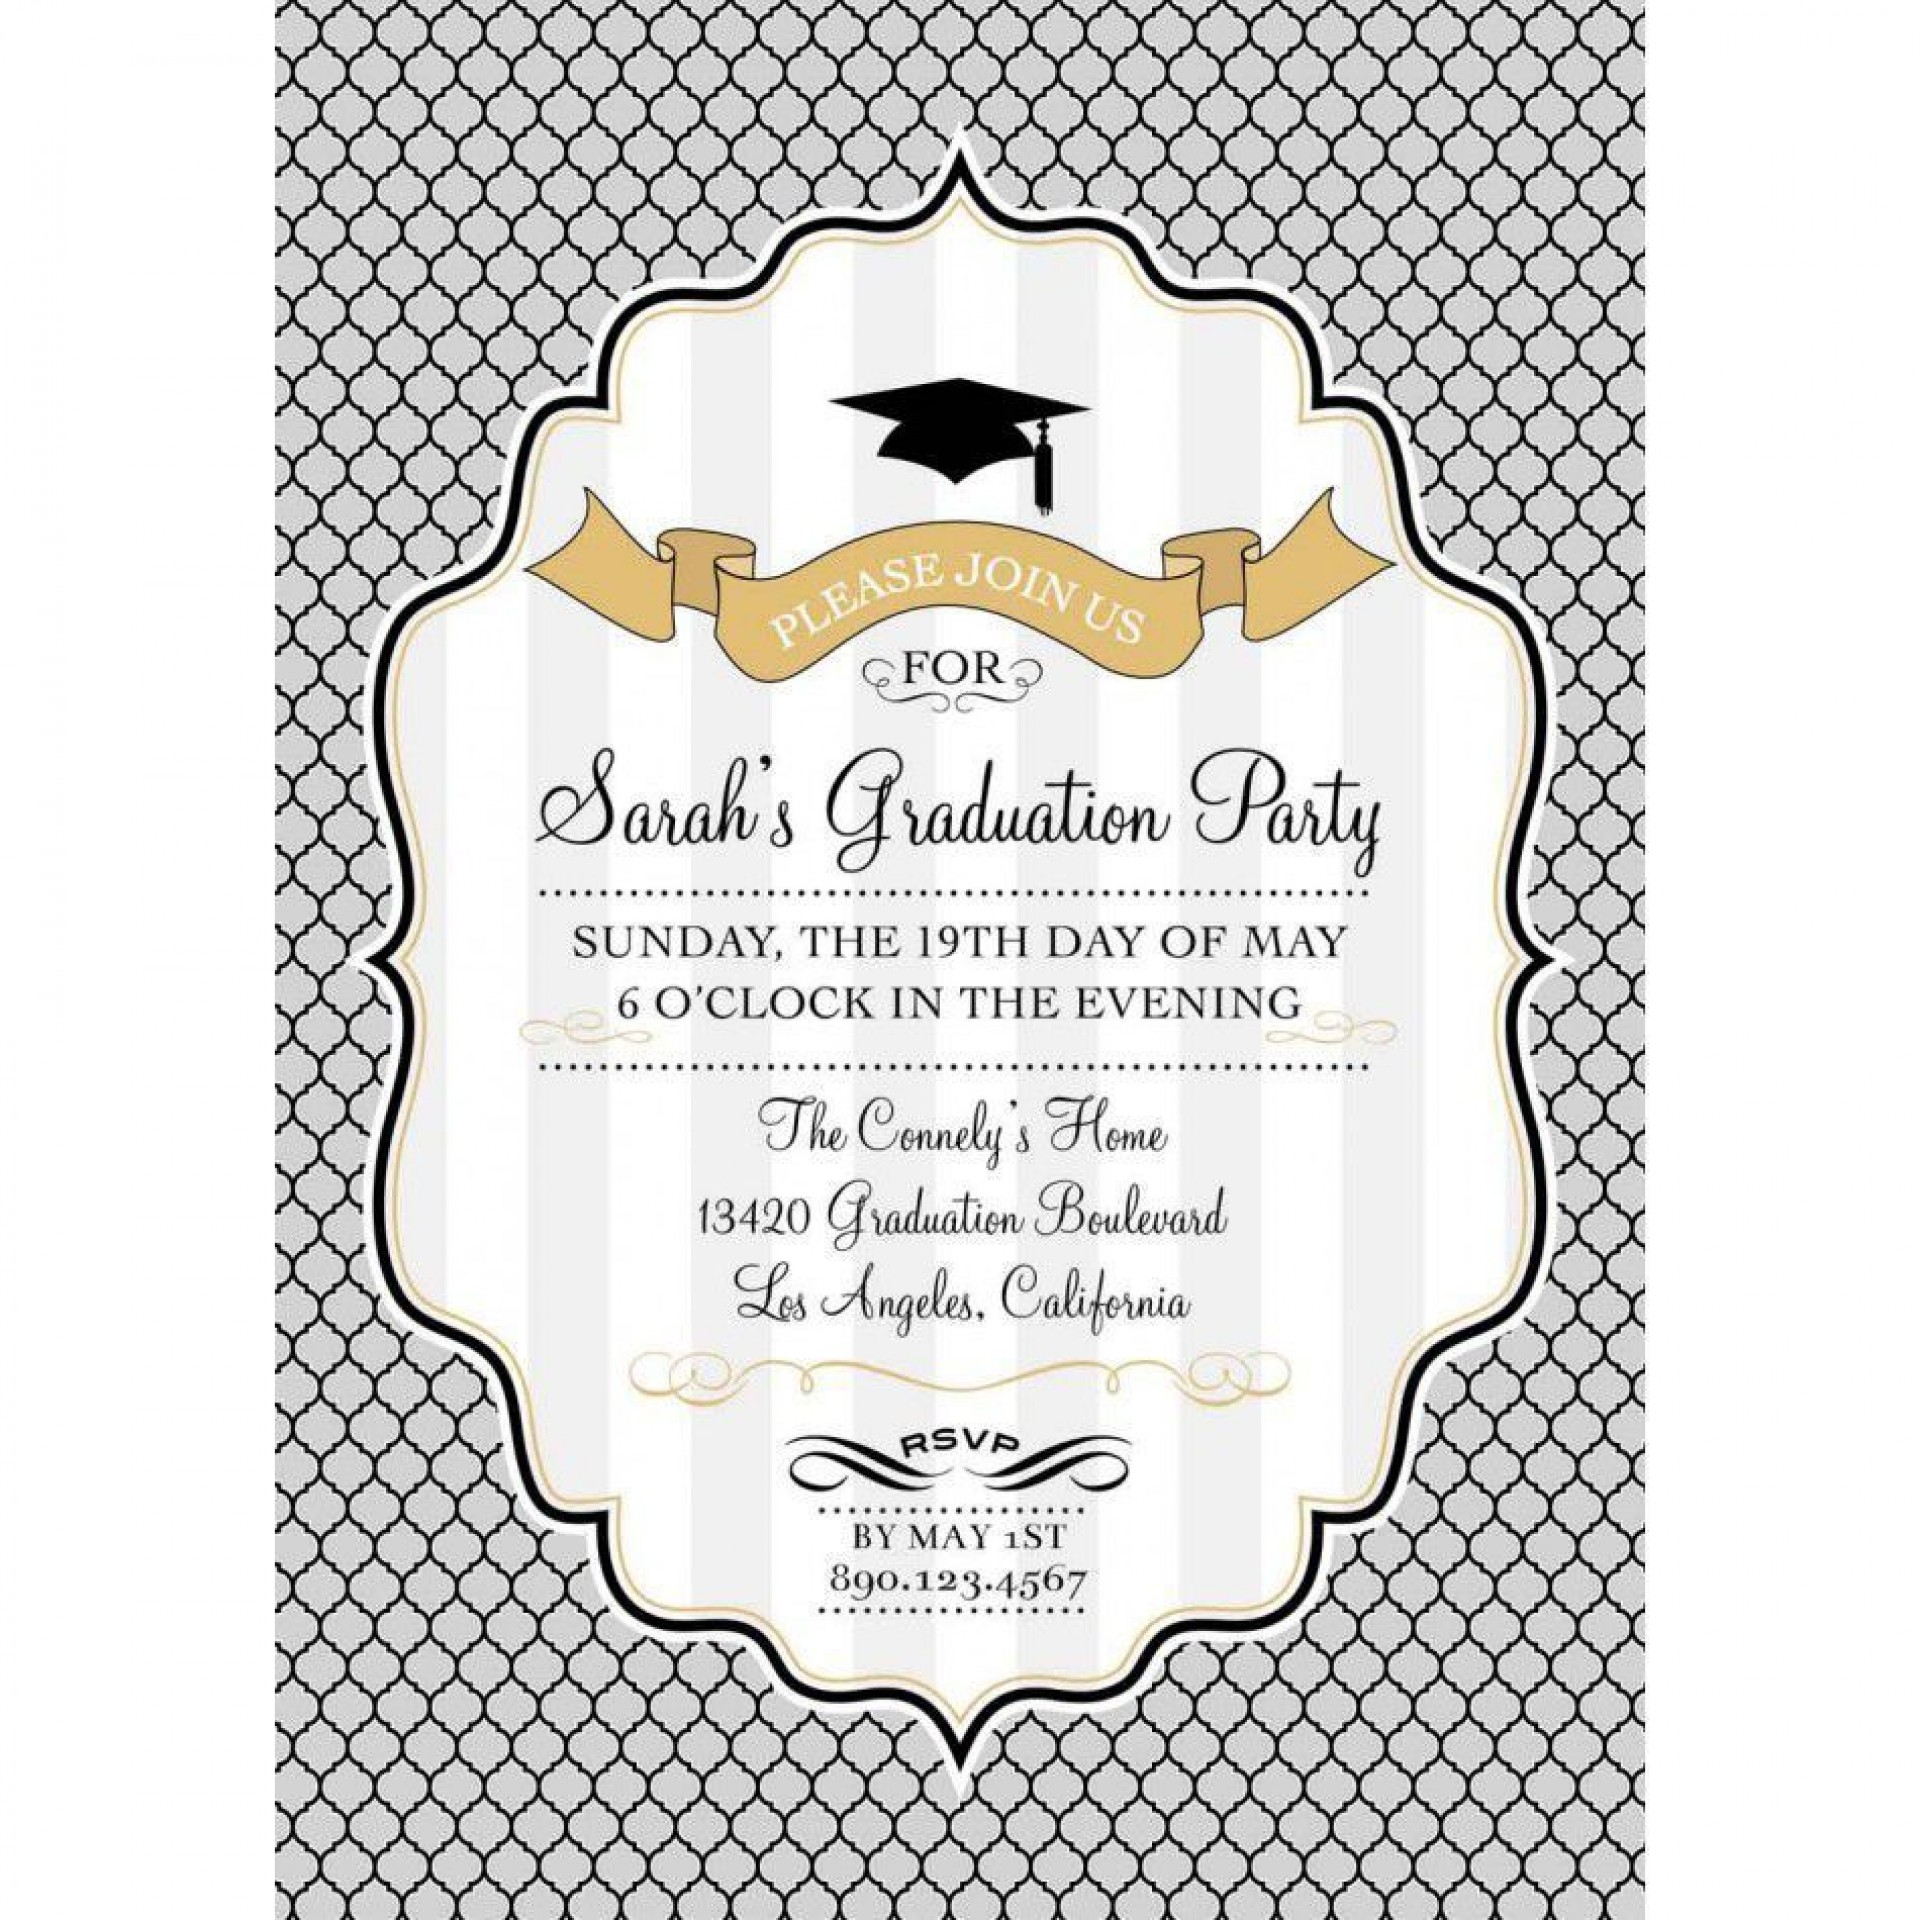 002 Stupendou Free Graduation Announcement Template Concept  Invitation Microsoft Word Printable Kindergarten1920